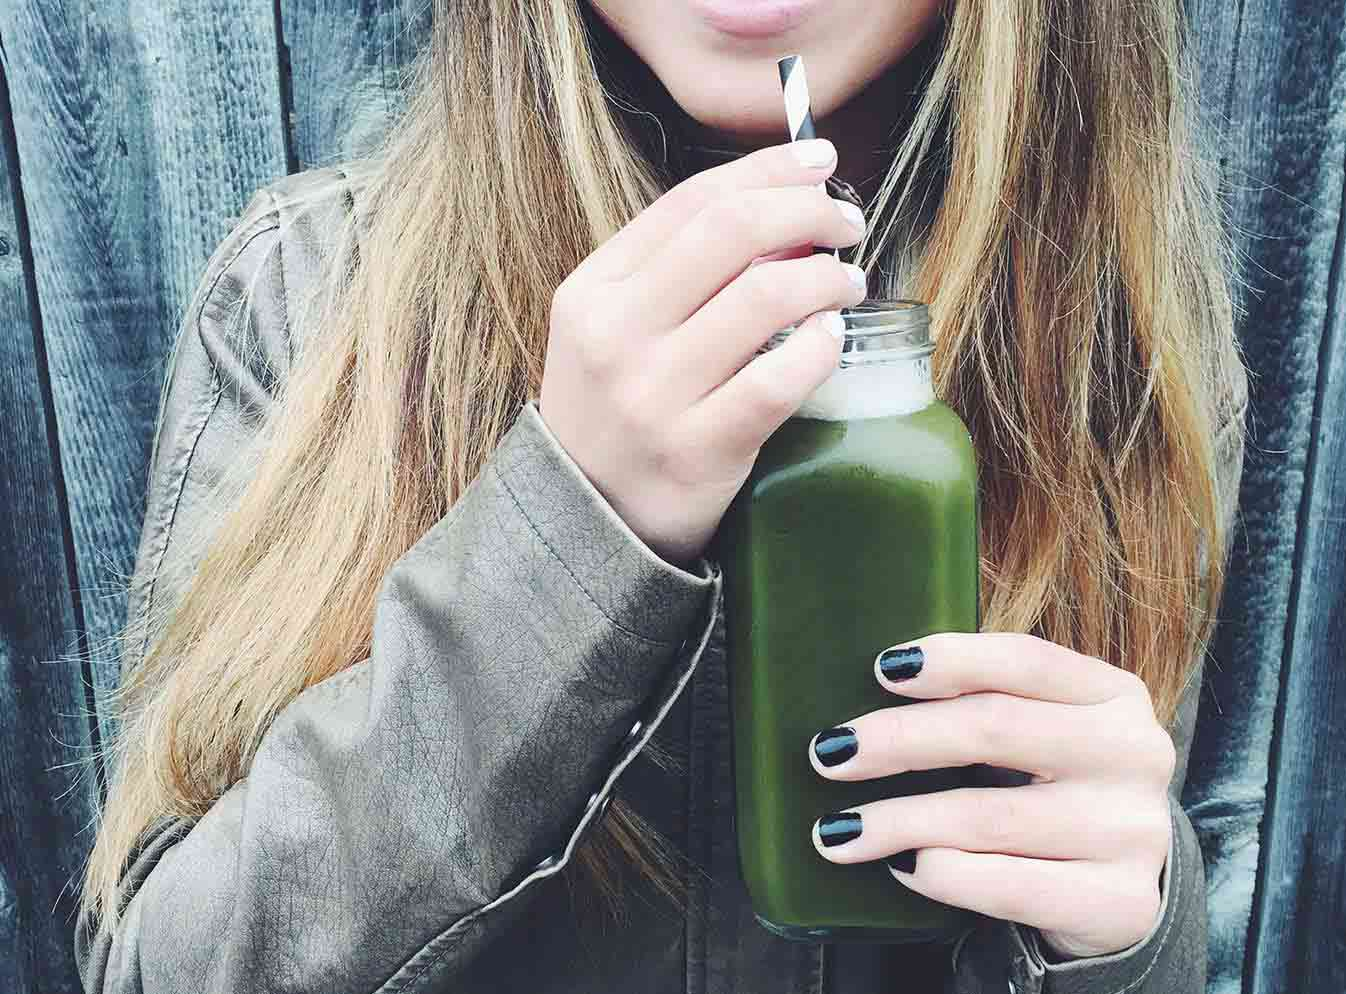 Girls hand holding pressed juice bottle